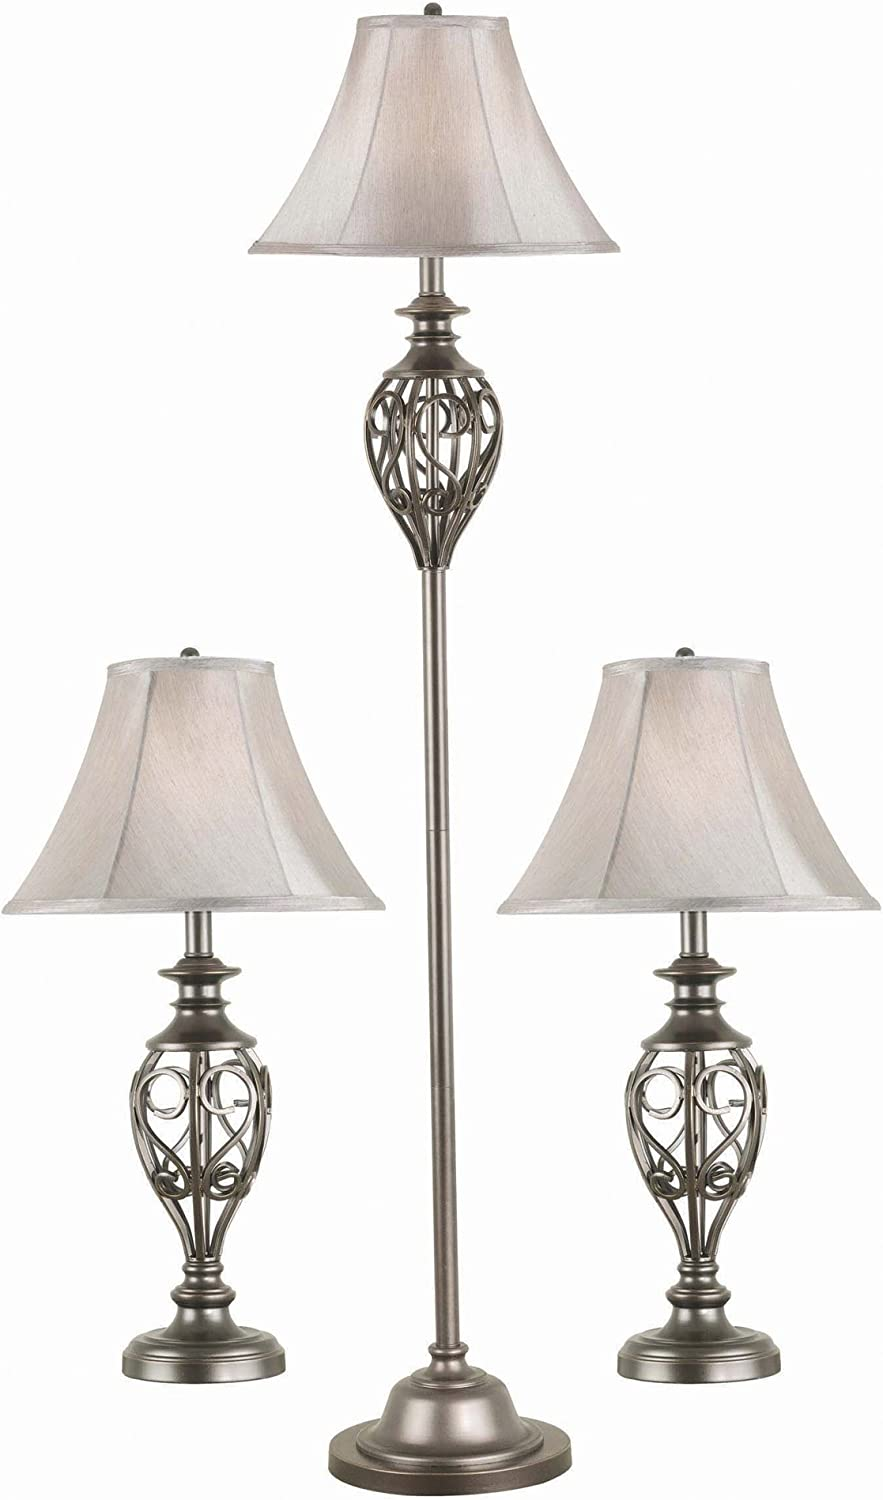 Kenroy Home 80007SIL 3-Pack Lamp Set, 64 Inch Height, 15 Inch Width, Silver